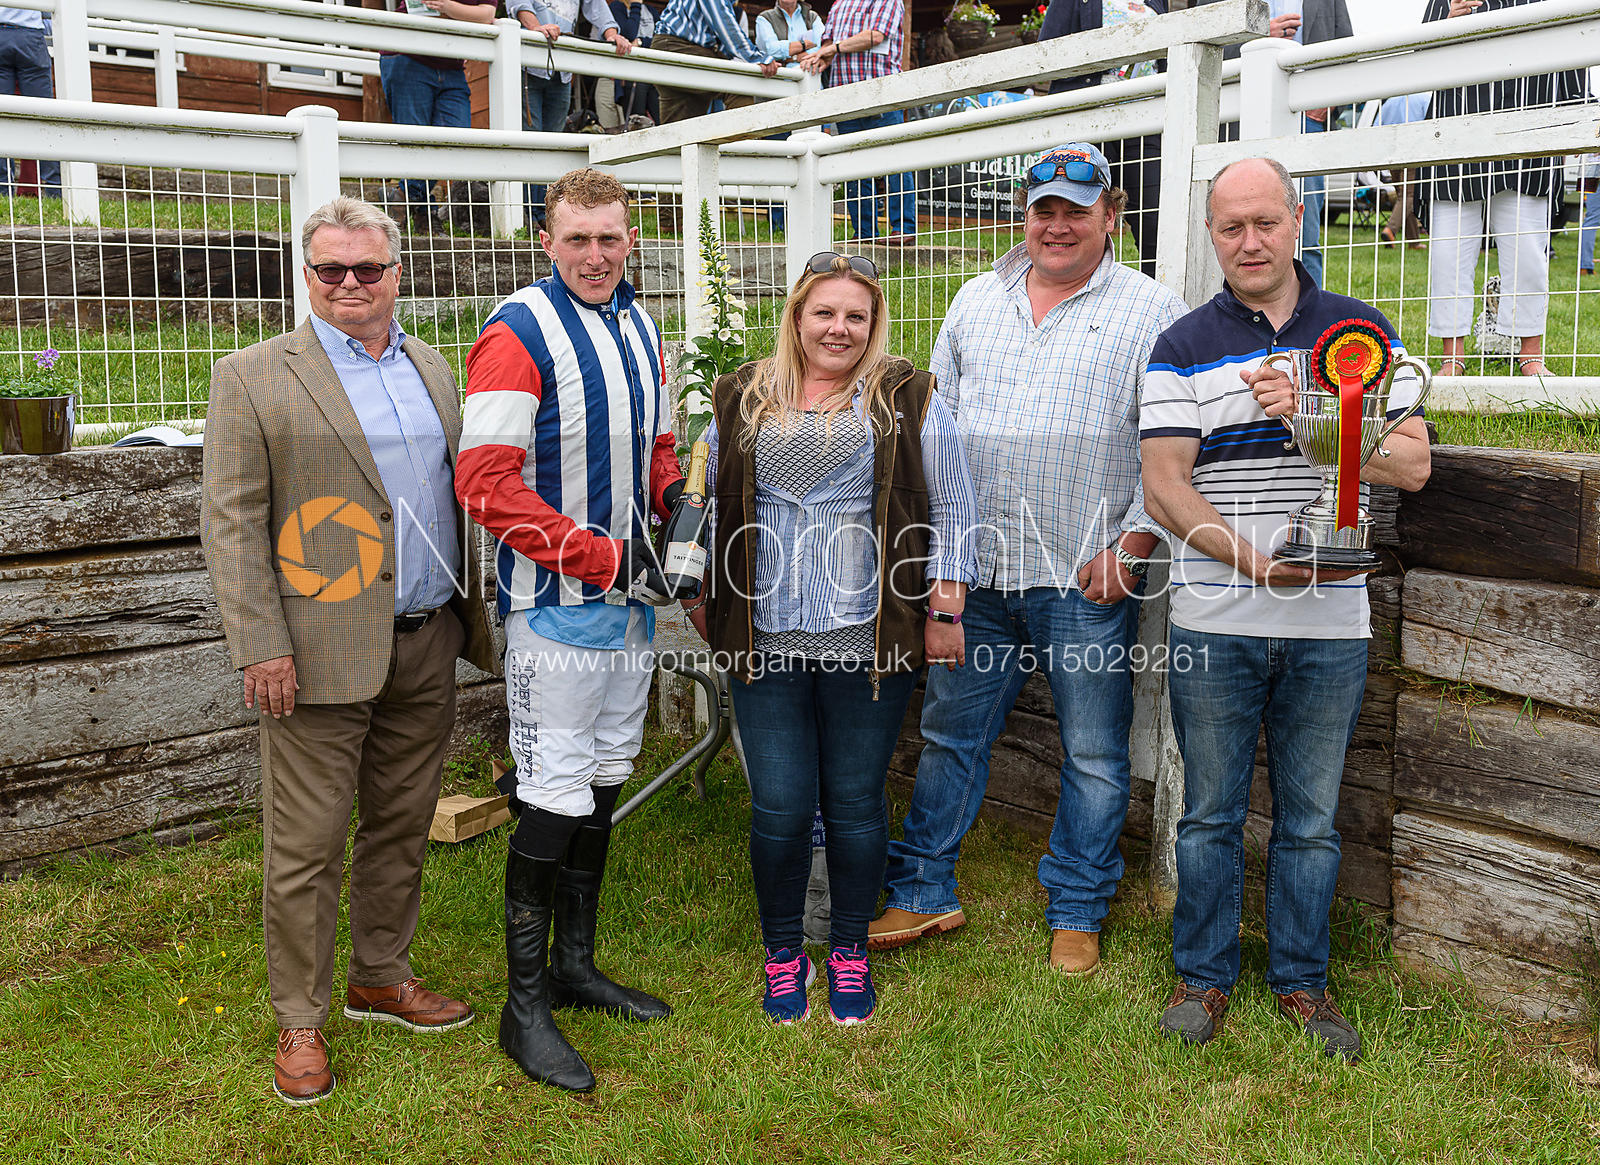 Dale Peters, Toby Hunt - Race 6 - Open Maiden - The Fitzwilliam at Dingley